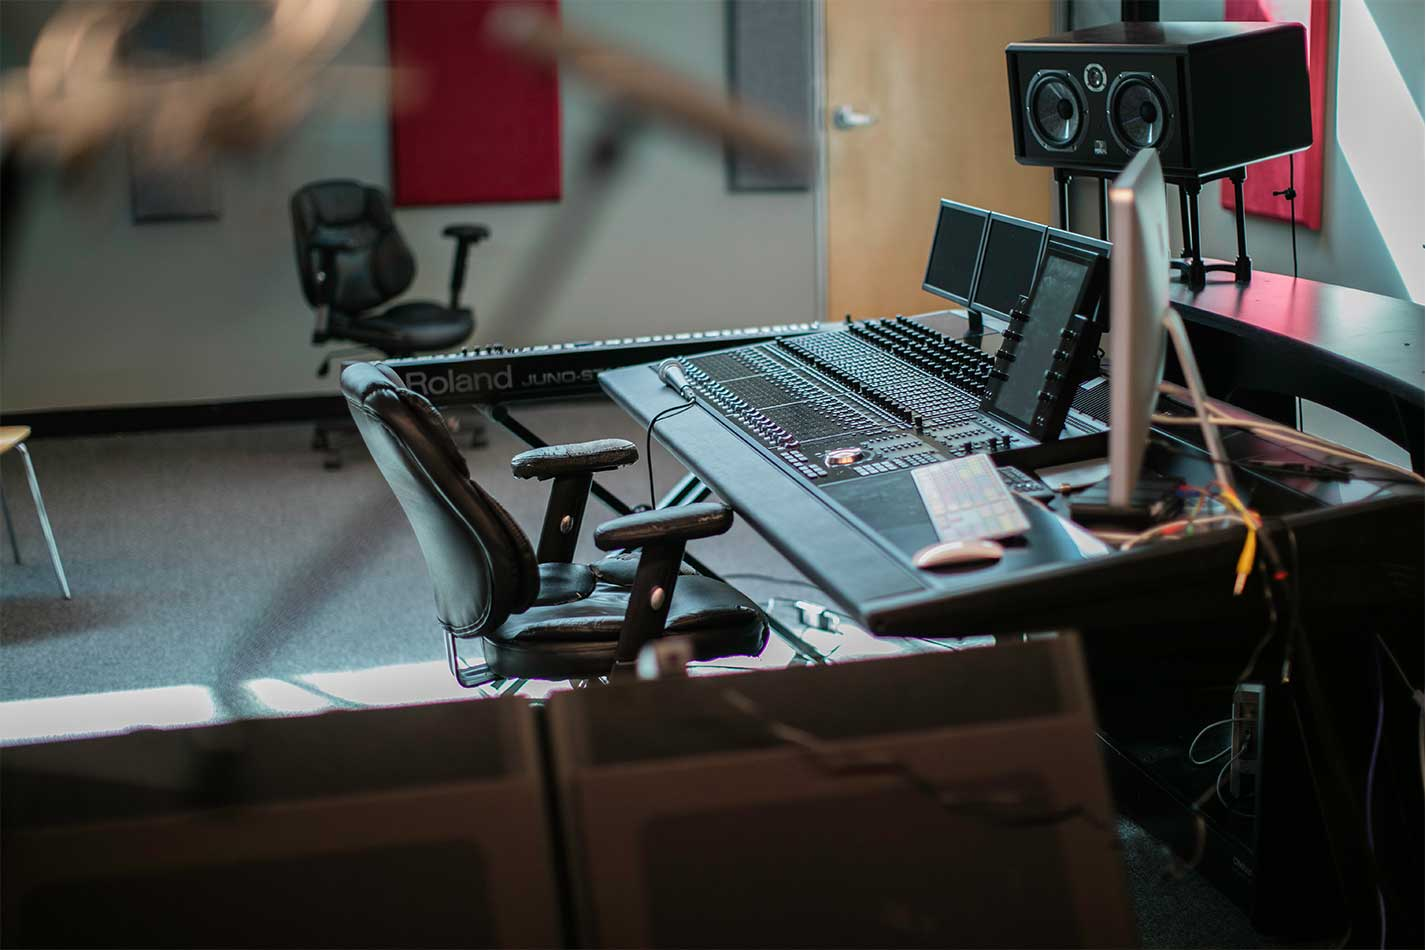 UVF sound board used for mixing